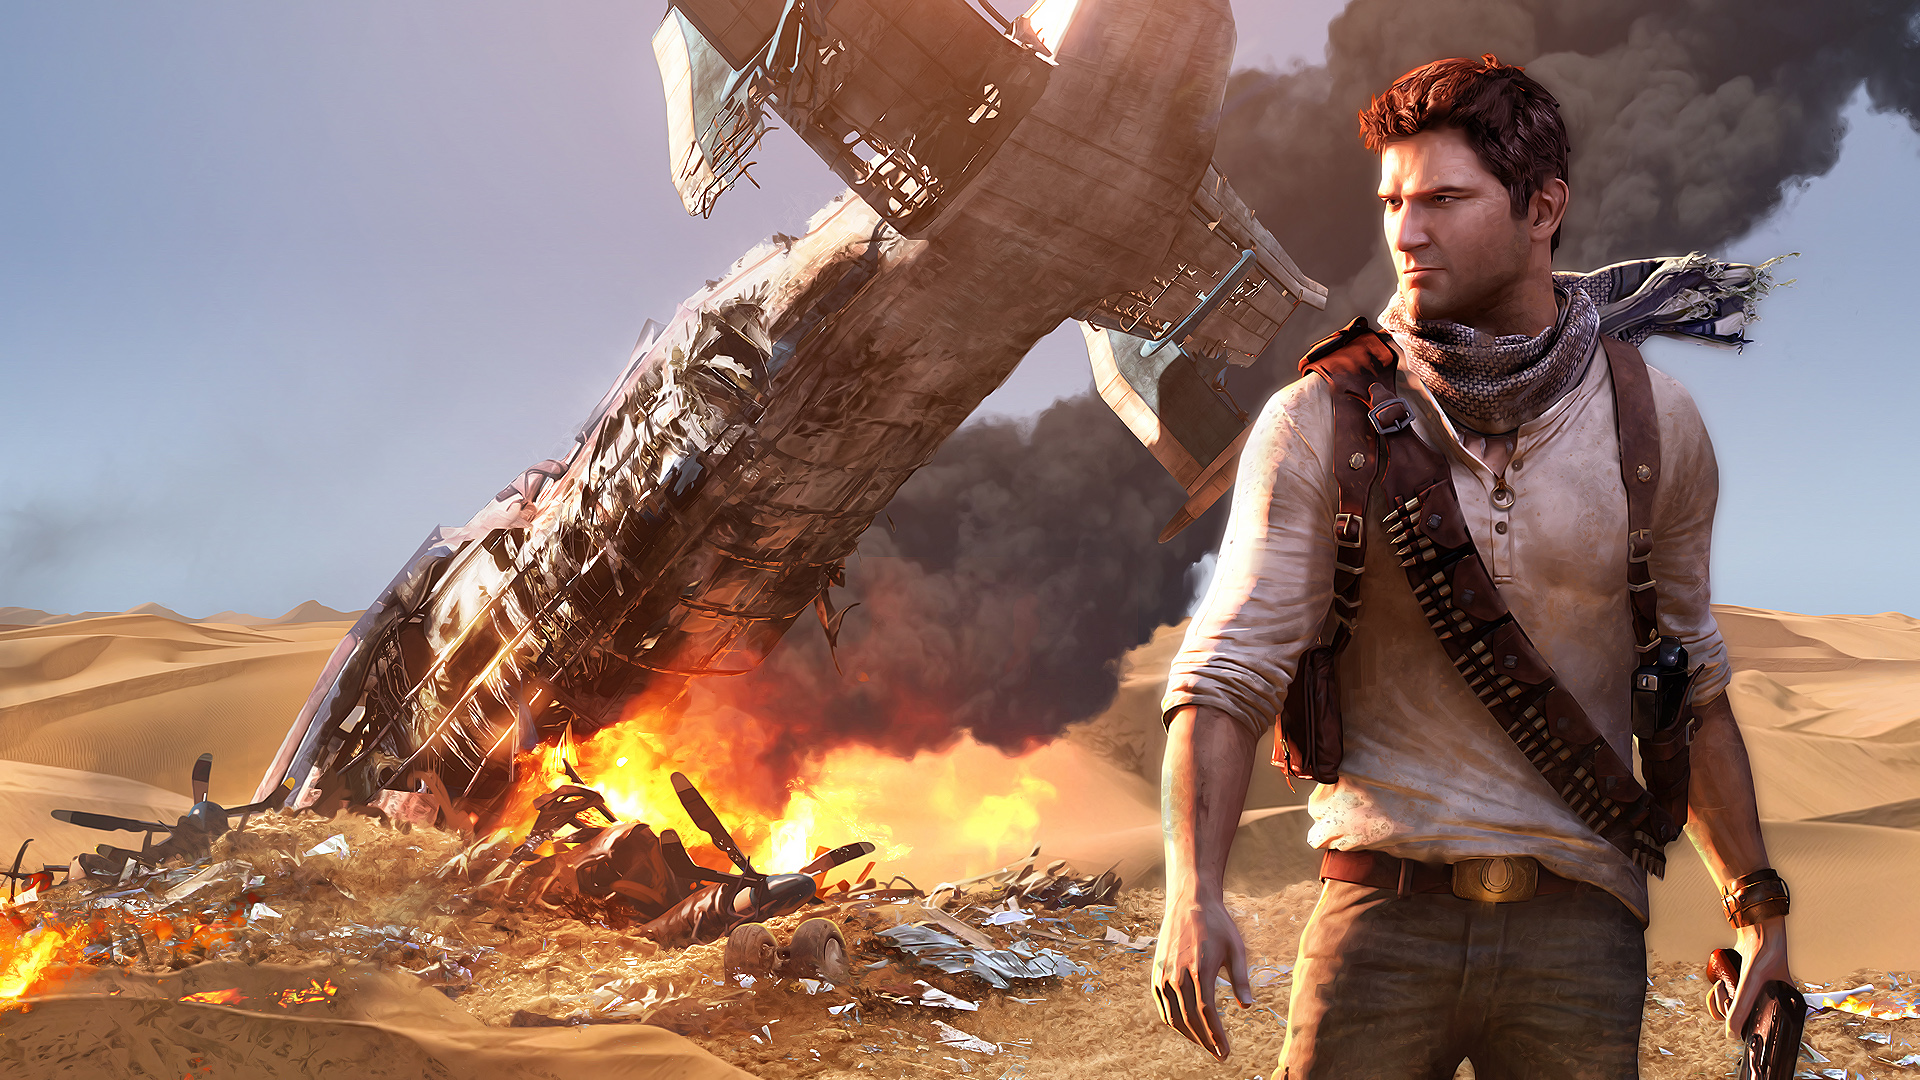 uncharted Hideo Kojima Shares First Details Of His Mysterious New Game